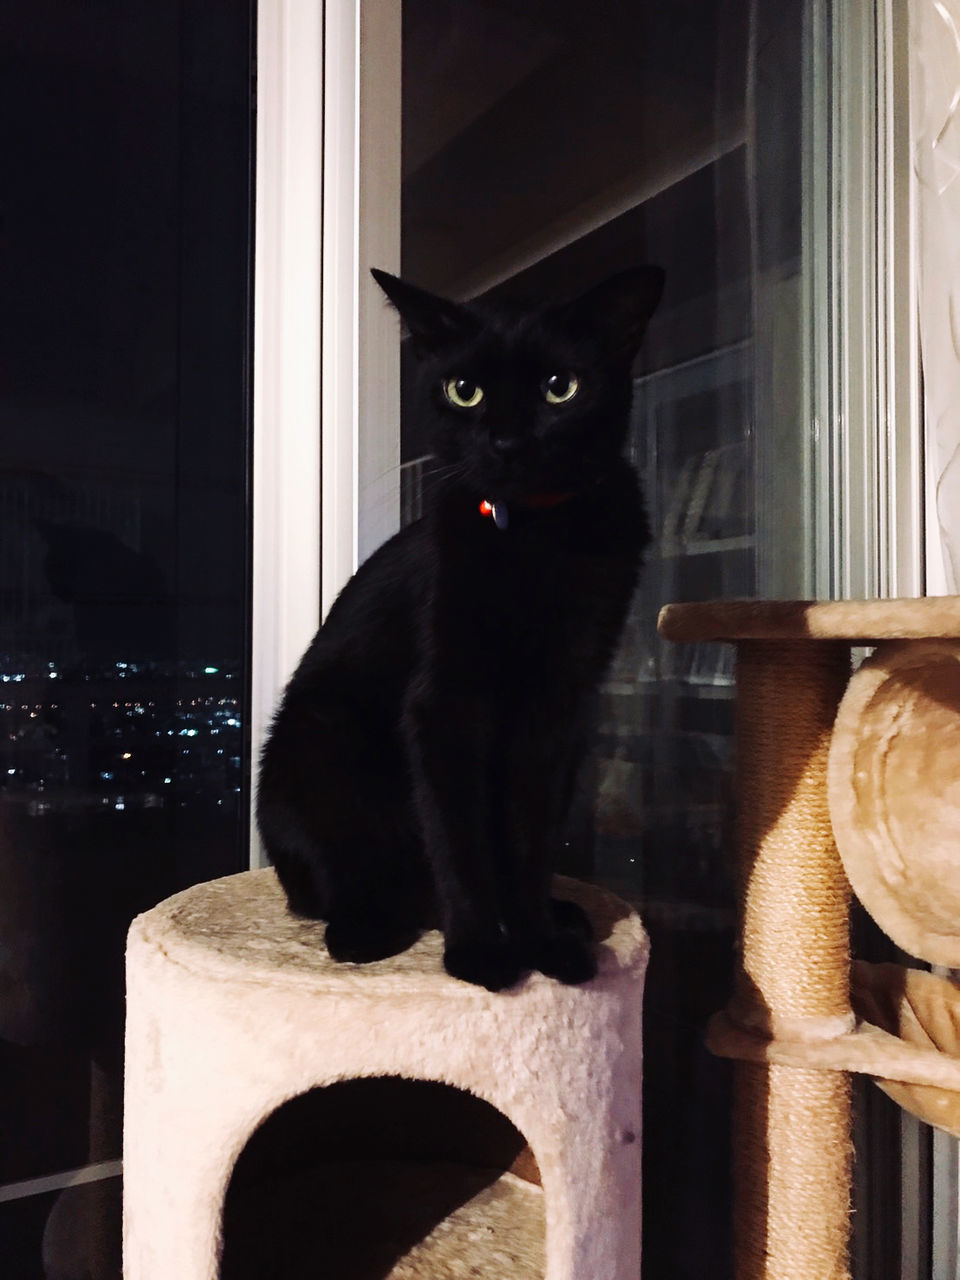 PORTRAIT OF A BLACK CAT SITTING ON CHAIR